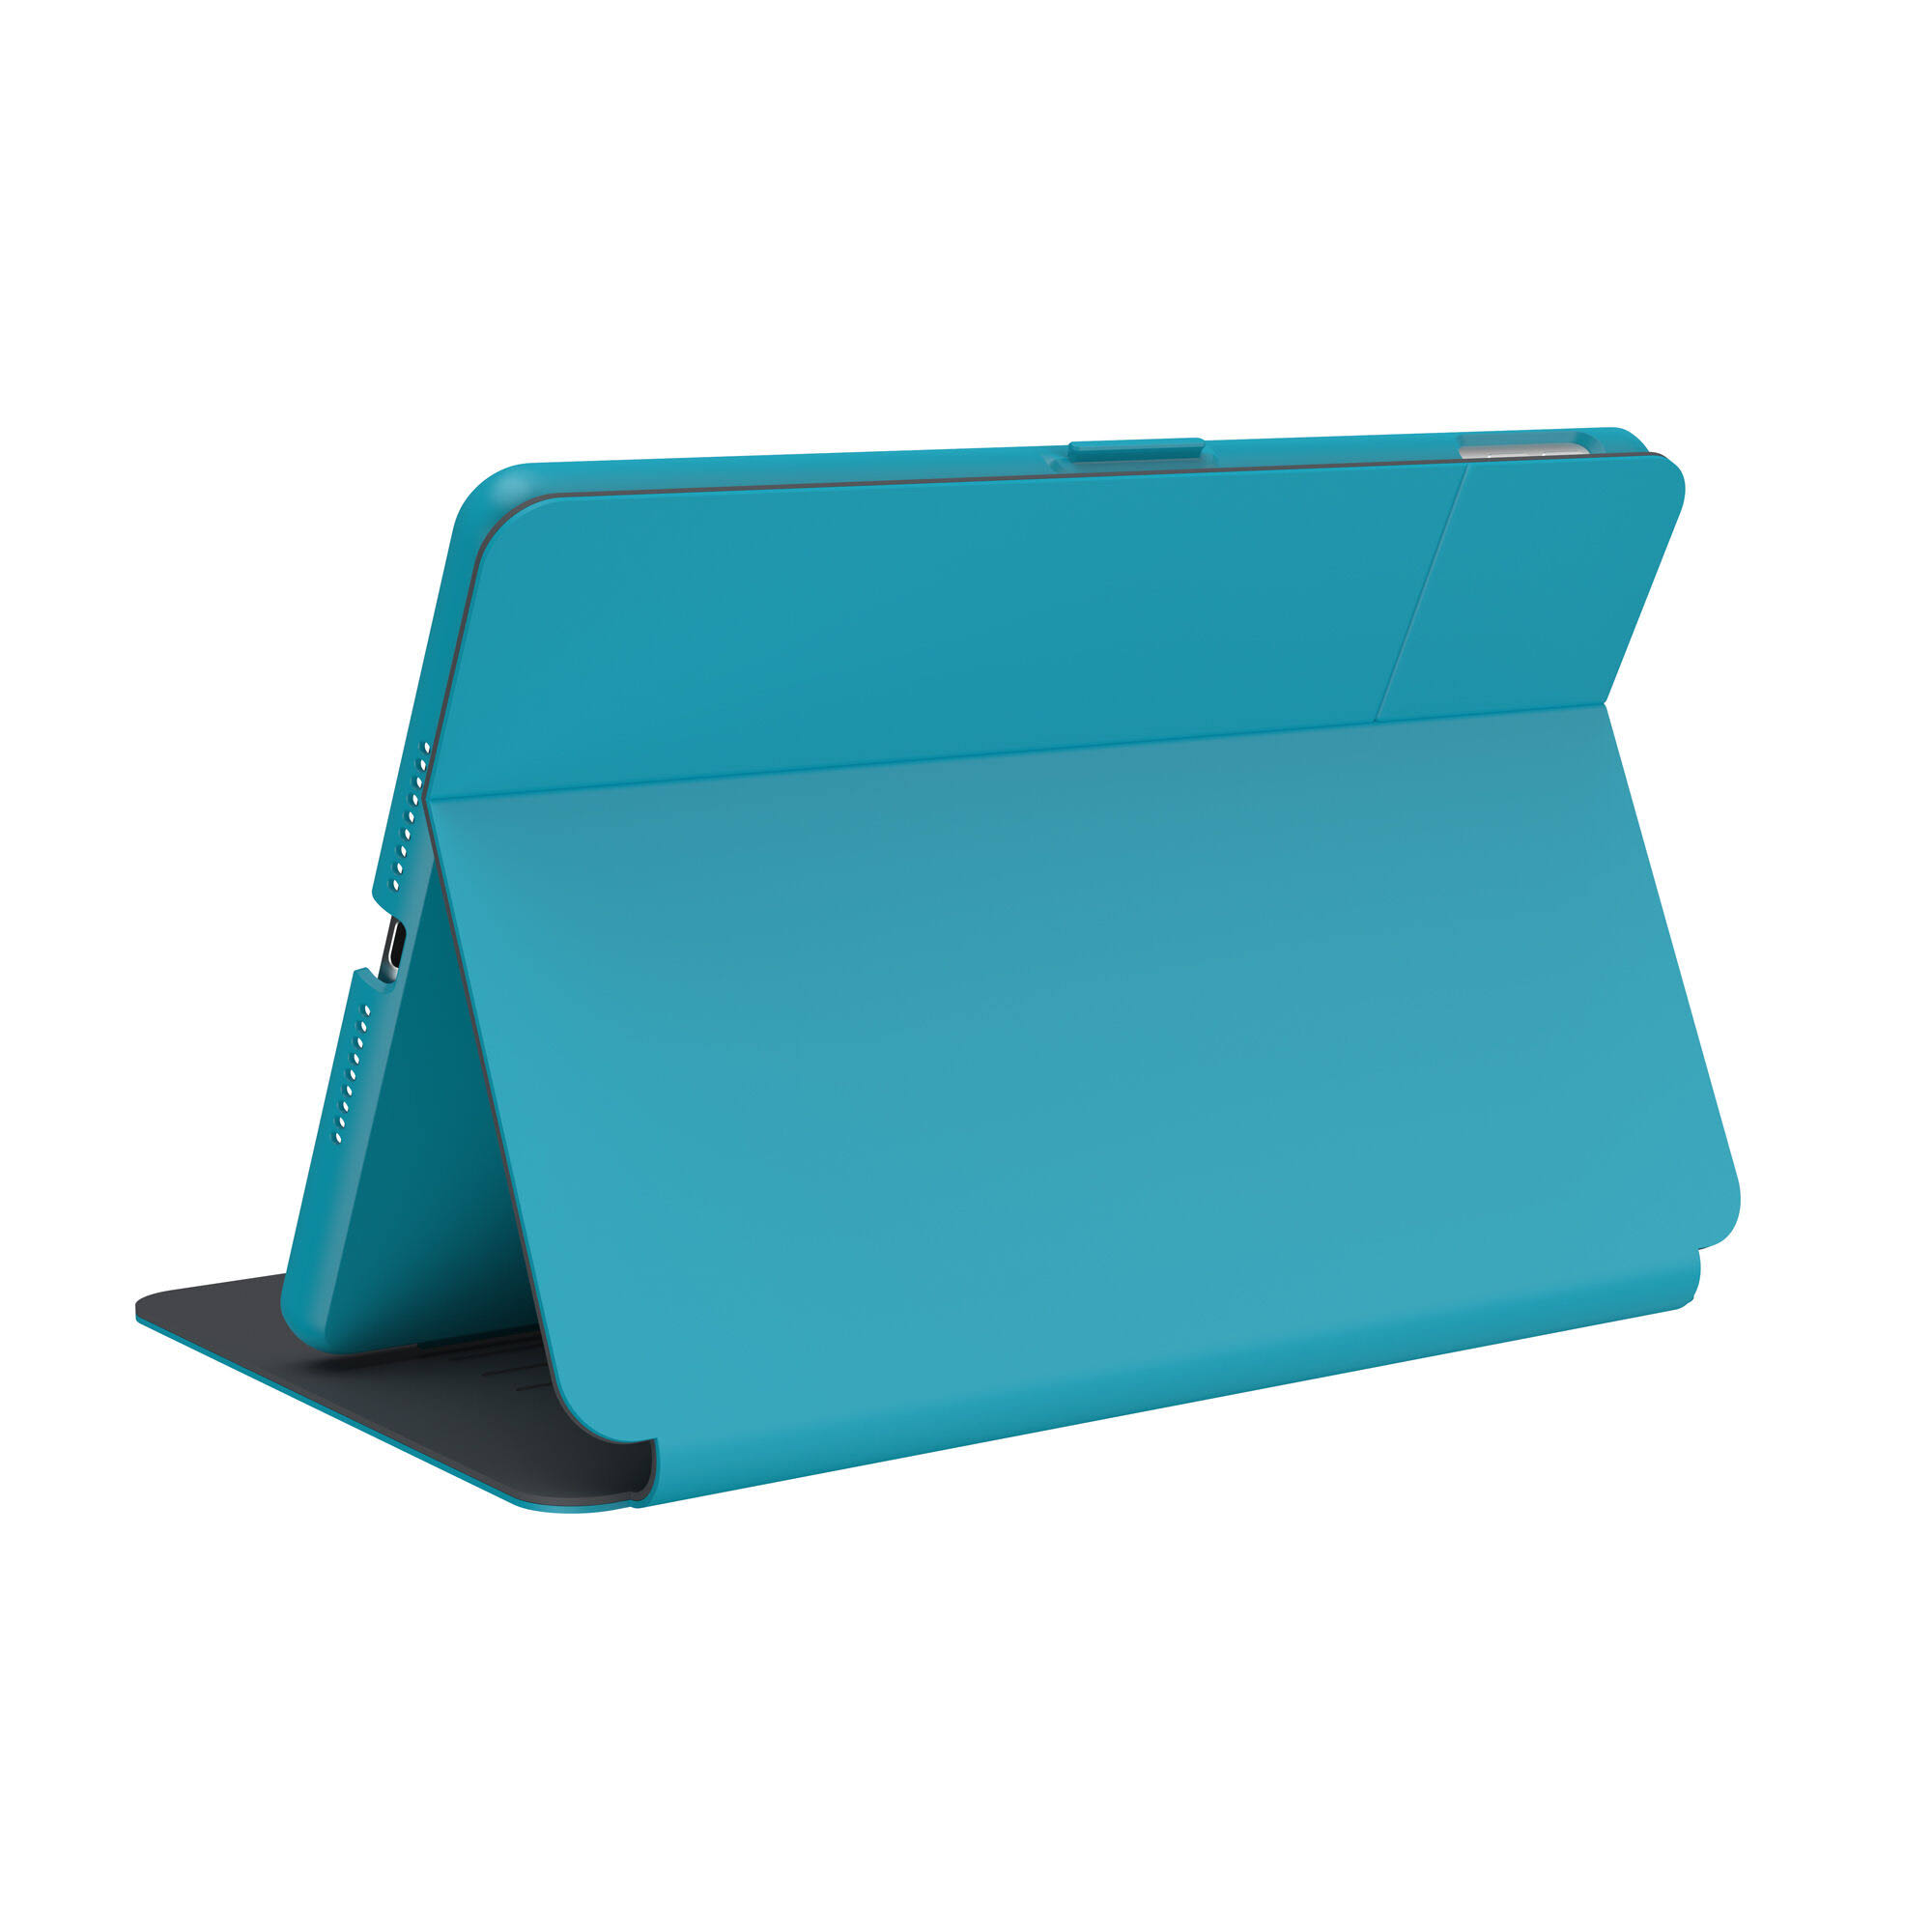 Speck iPad 10.2 Balance Folio Carrying Case - Blue